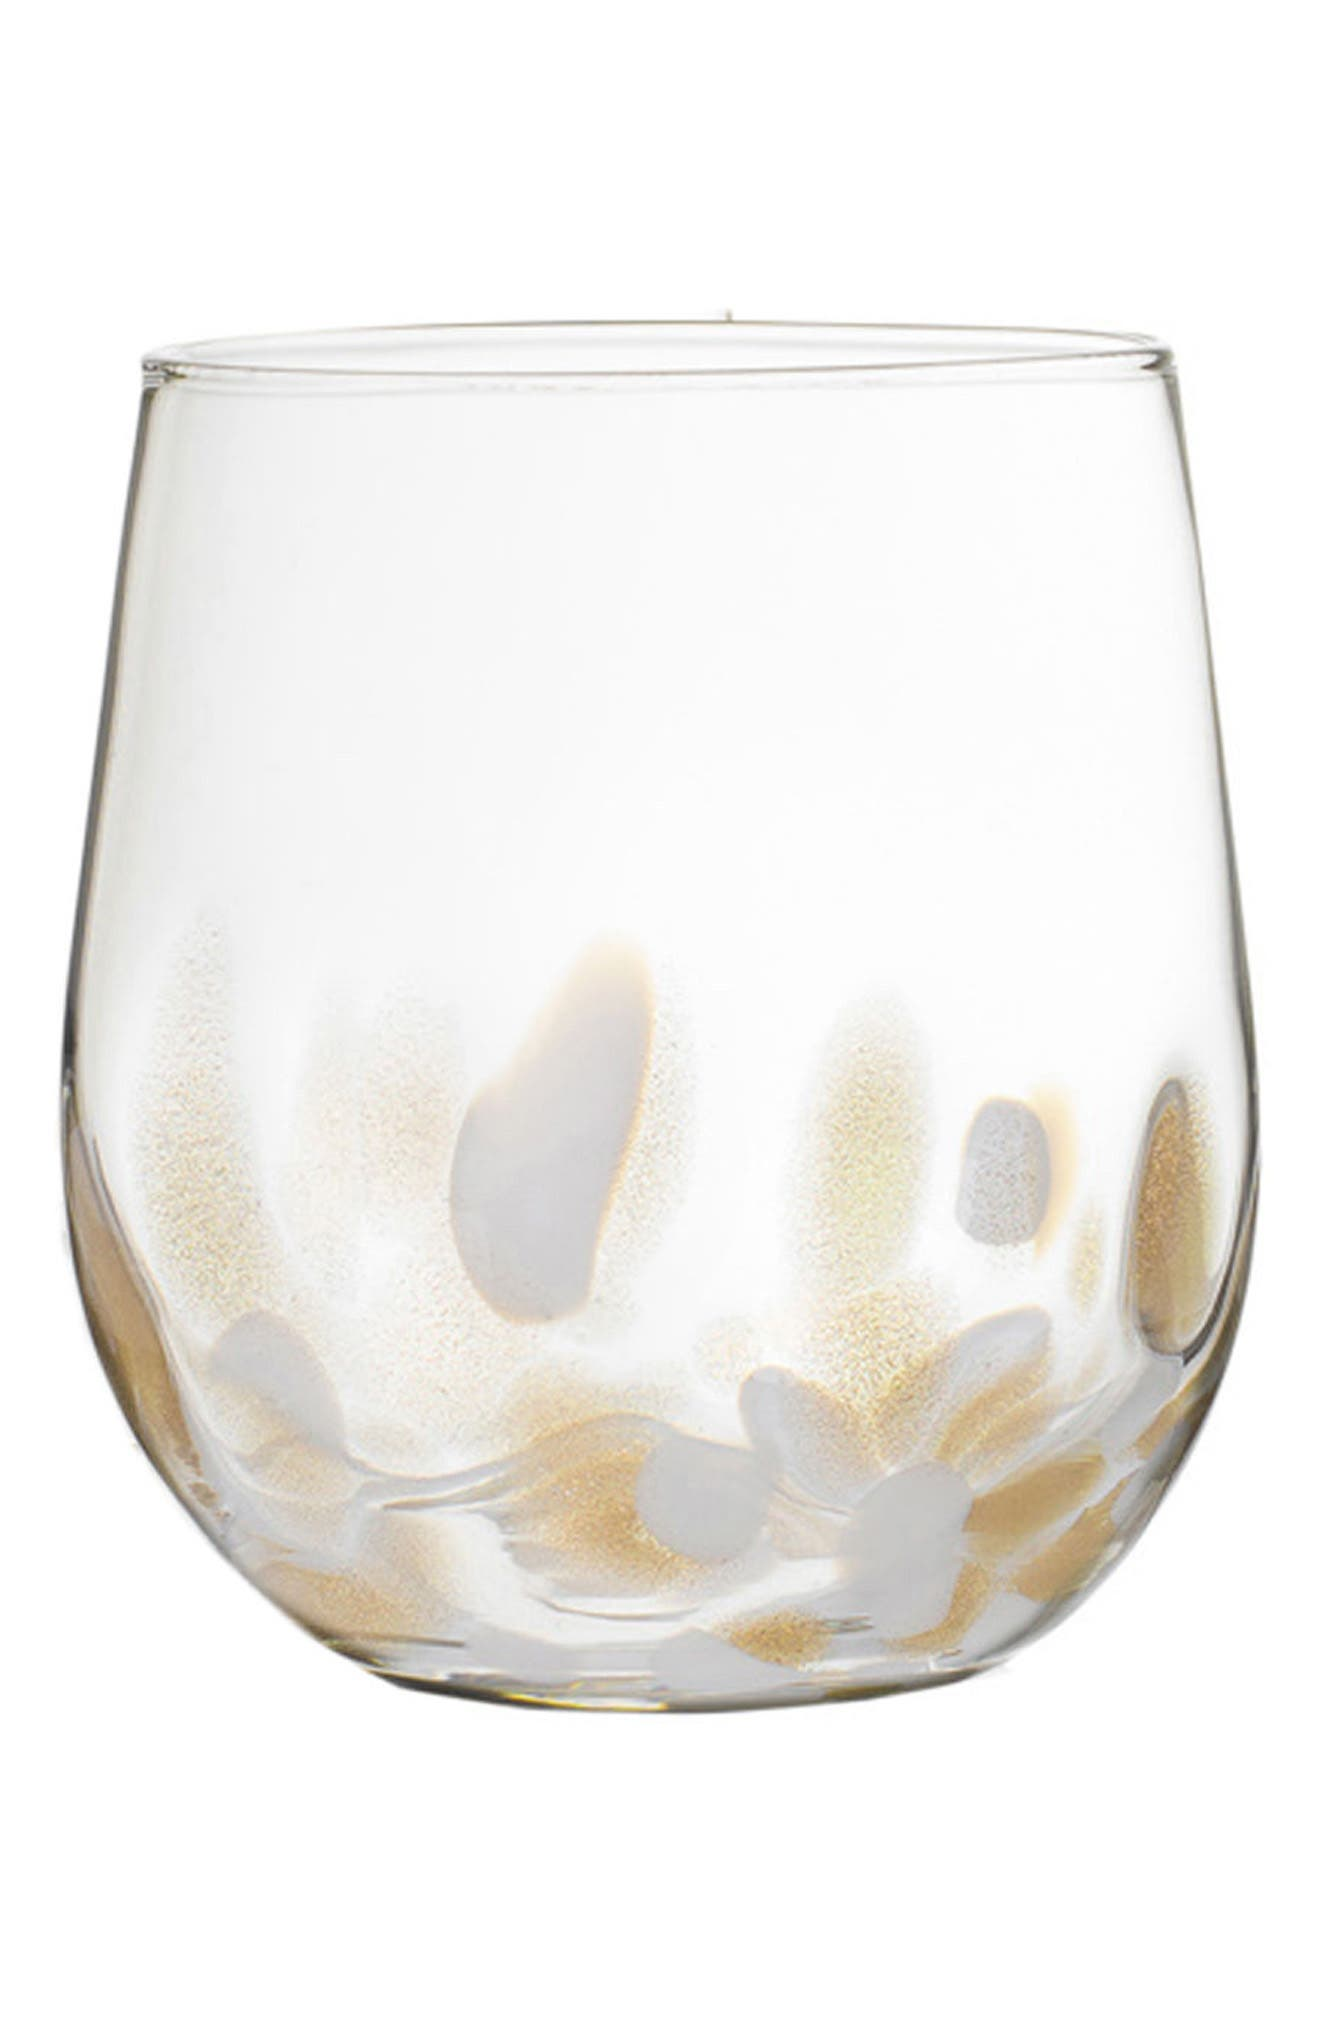 Simone Set of 4 Stemless Wine Glasses,                             Main thumbnail 1, color,                             WHITE/ GOLD